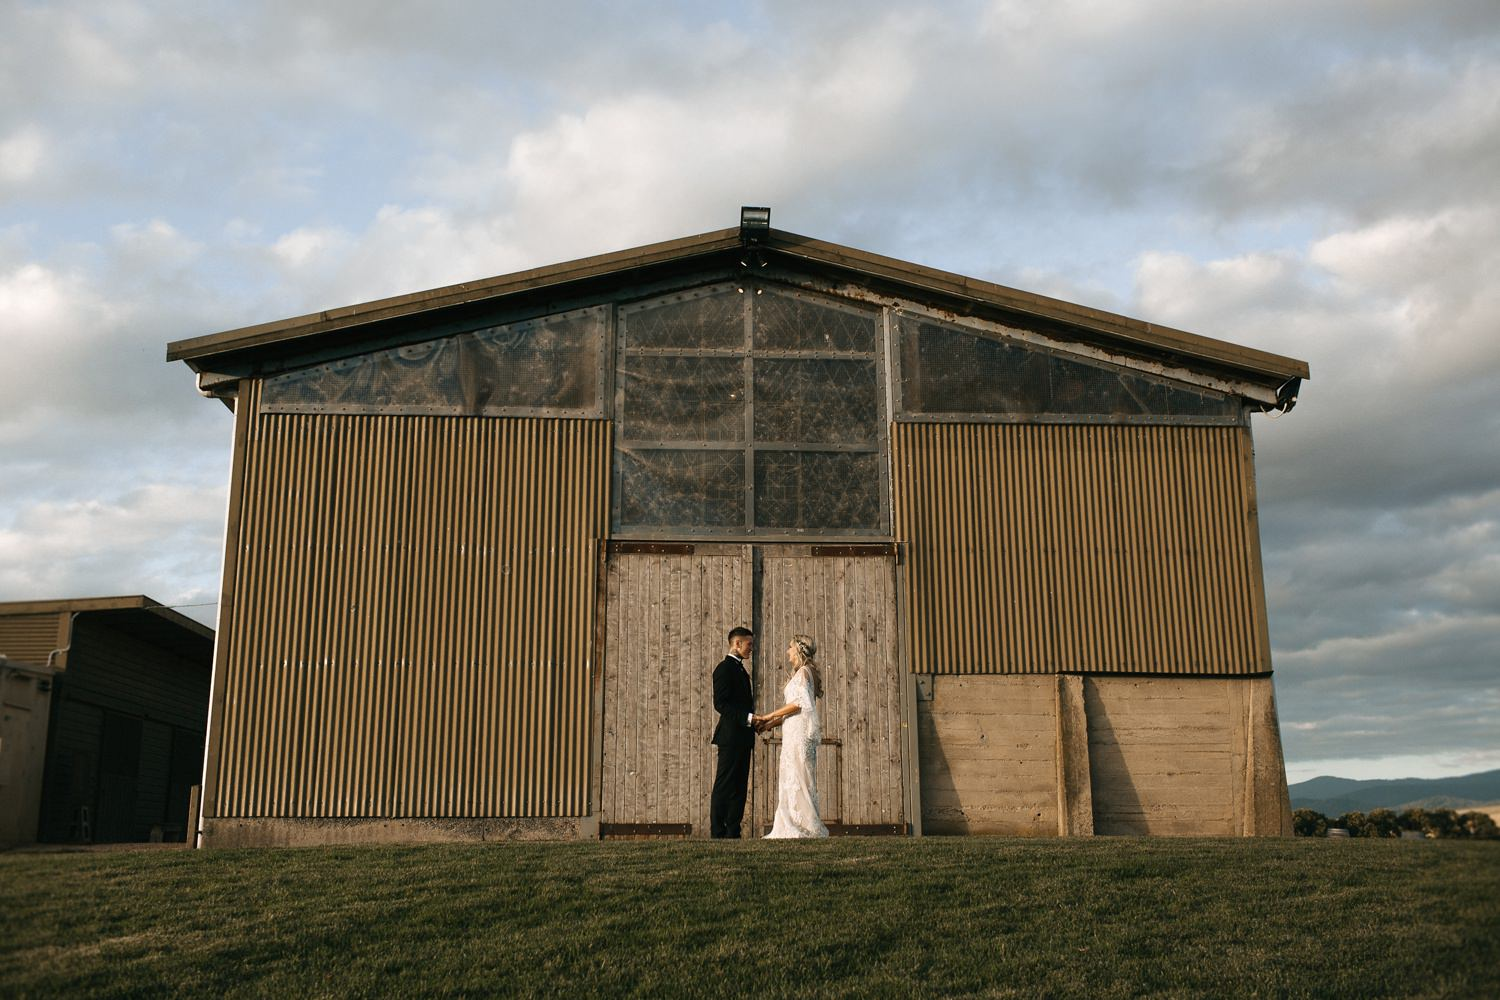 zonzo-estate-yarra-valley-wedding-photographer_0088.jpg